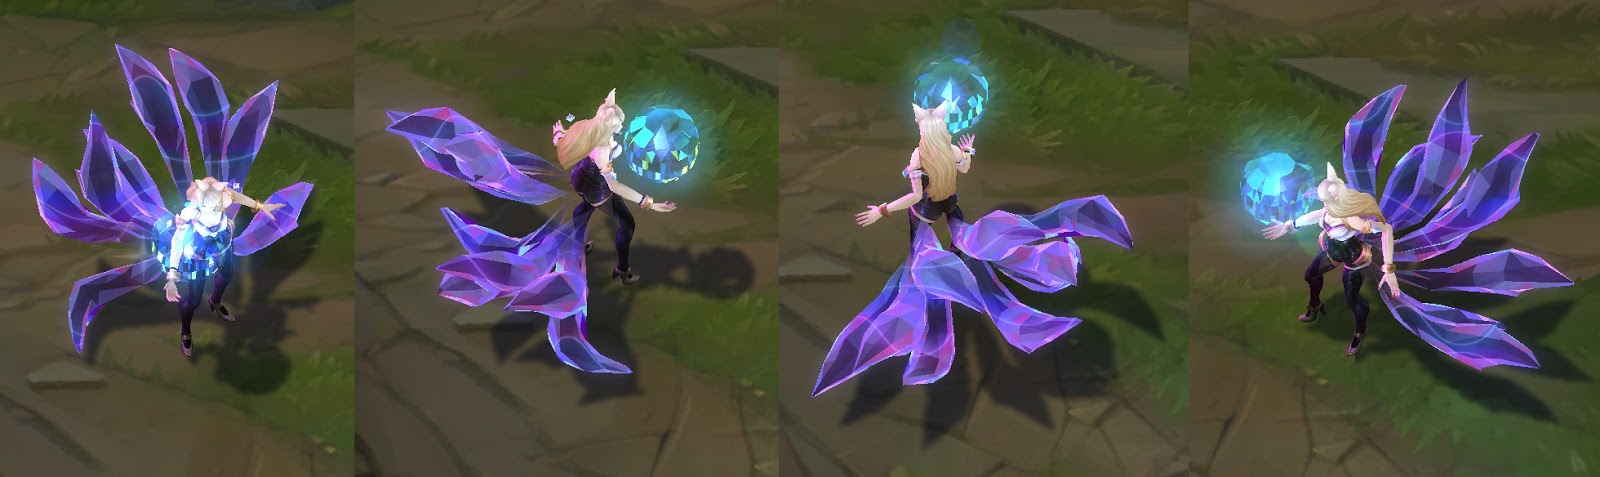 kda ahri skin for league of legends ingame picture